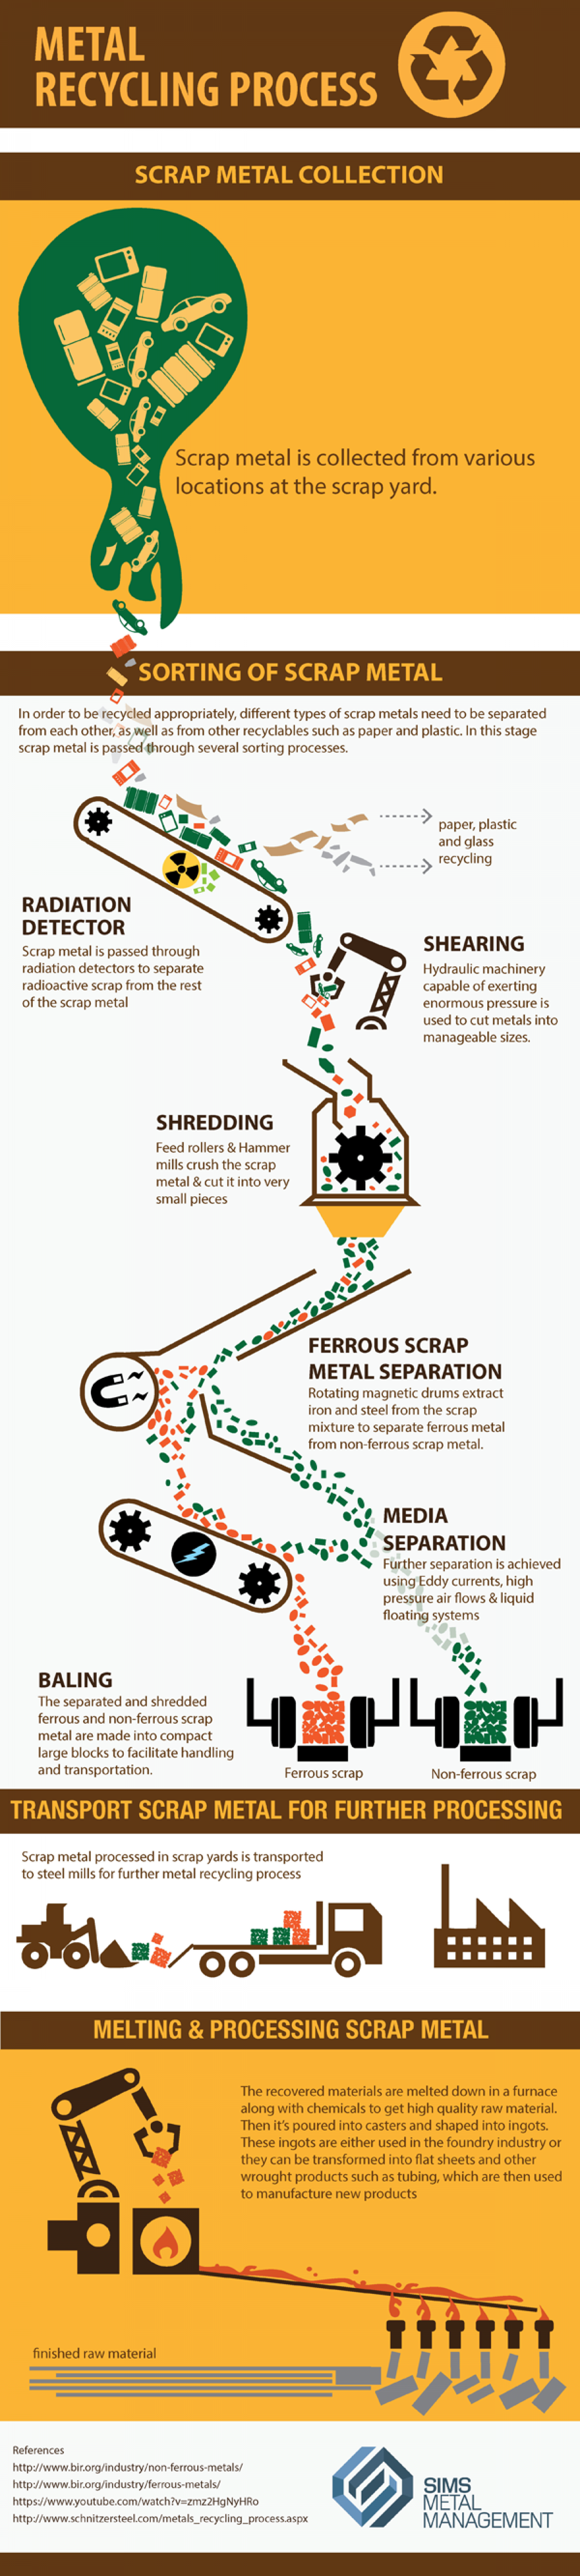 Metal Recycling Process Infographic